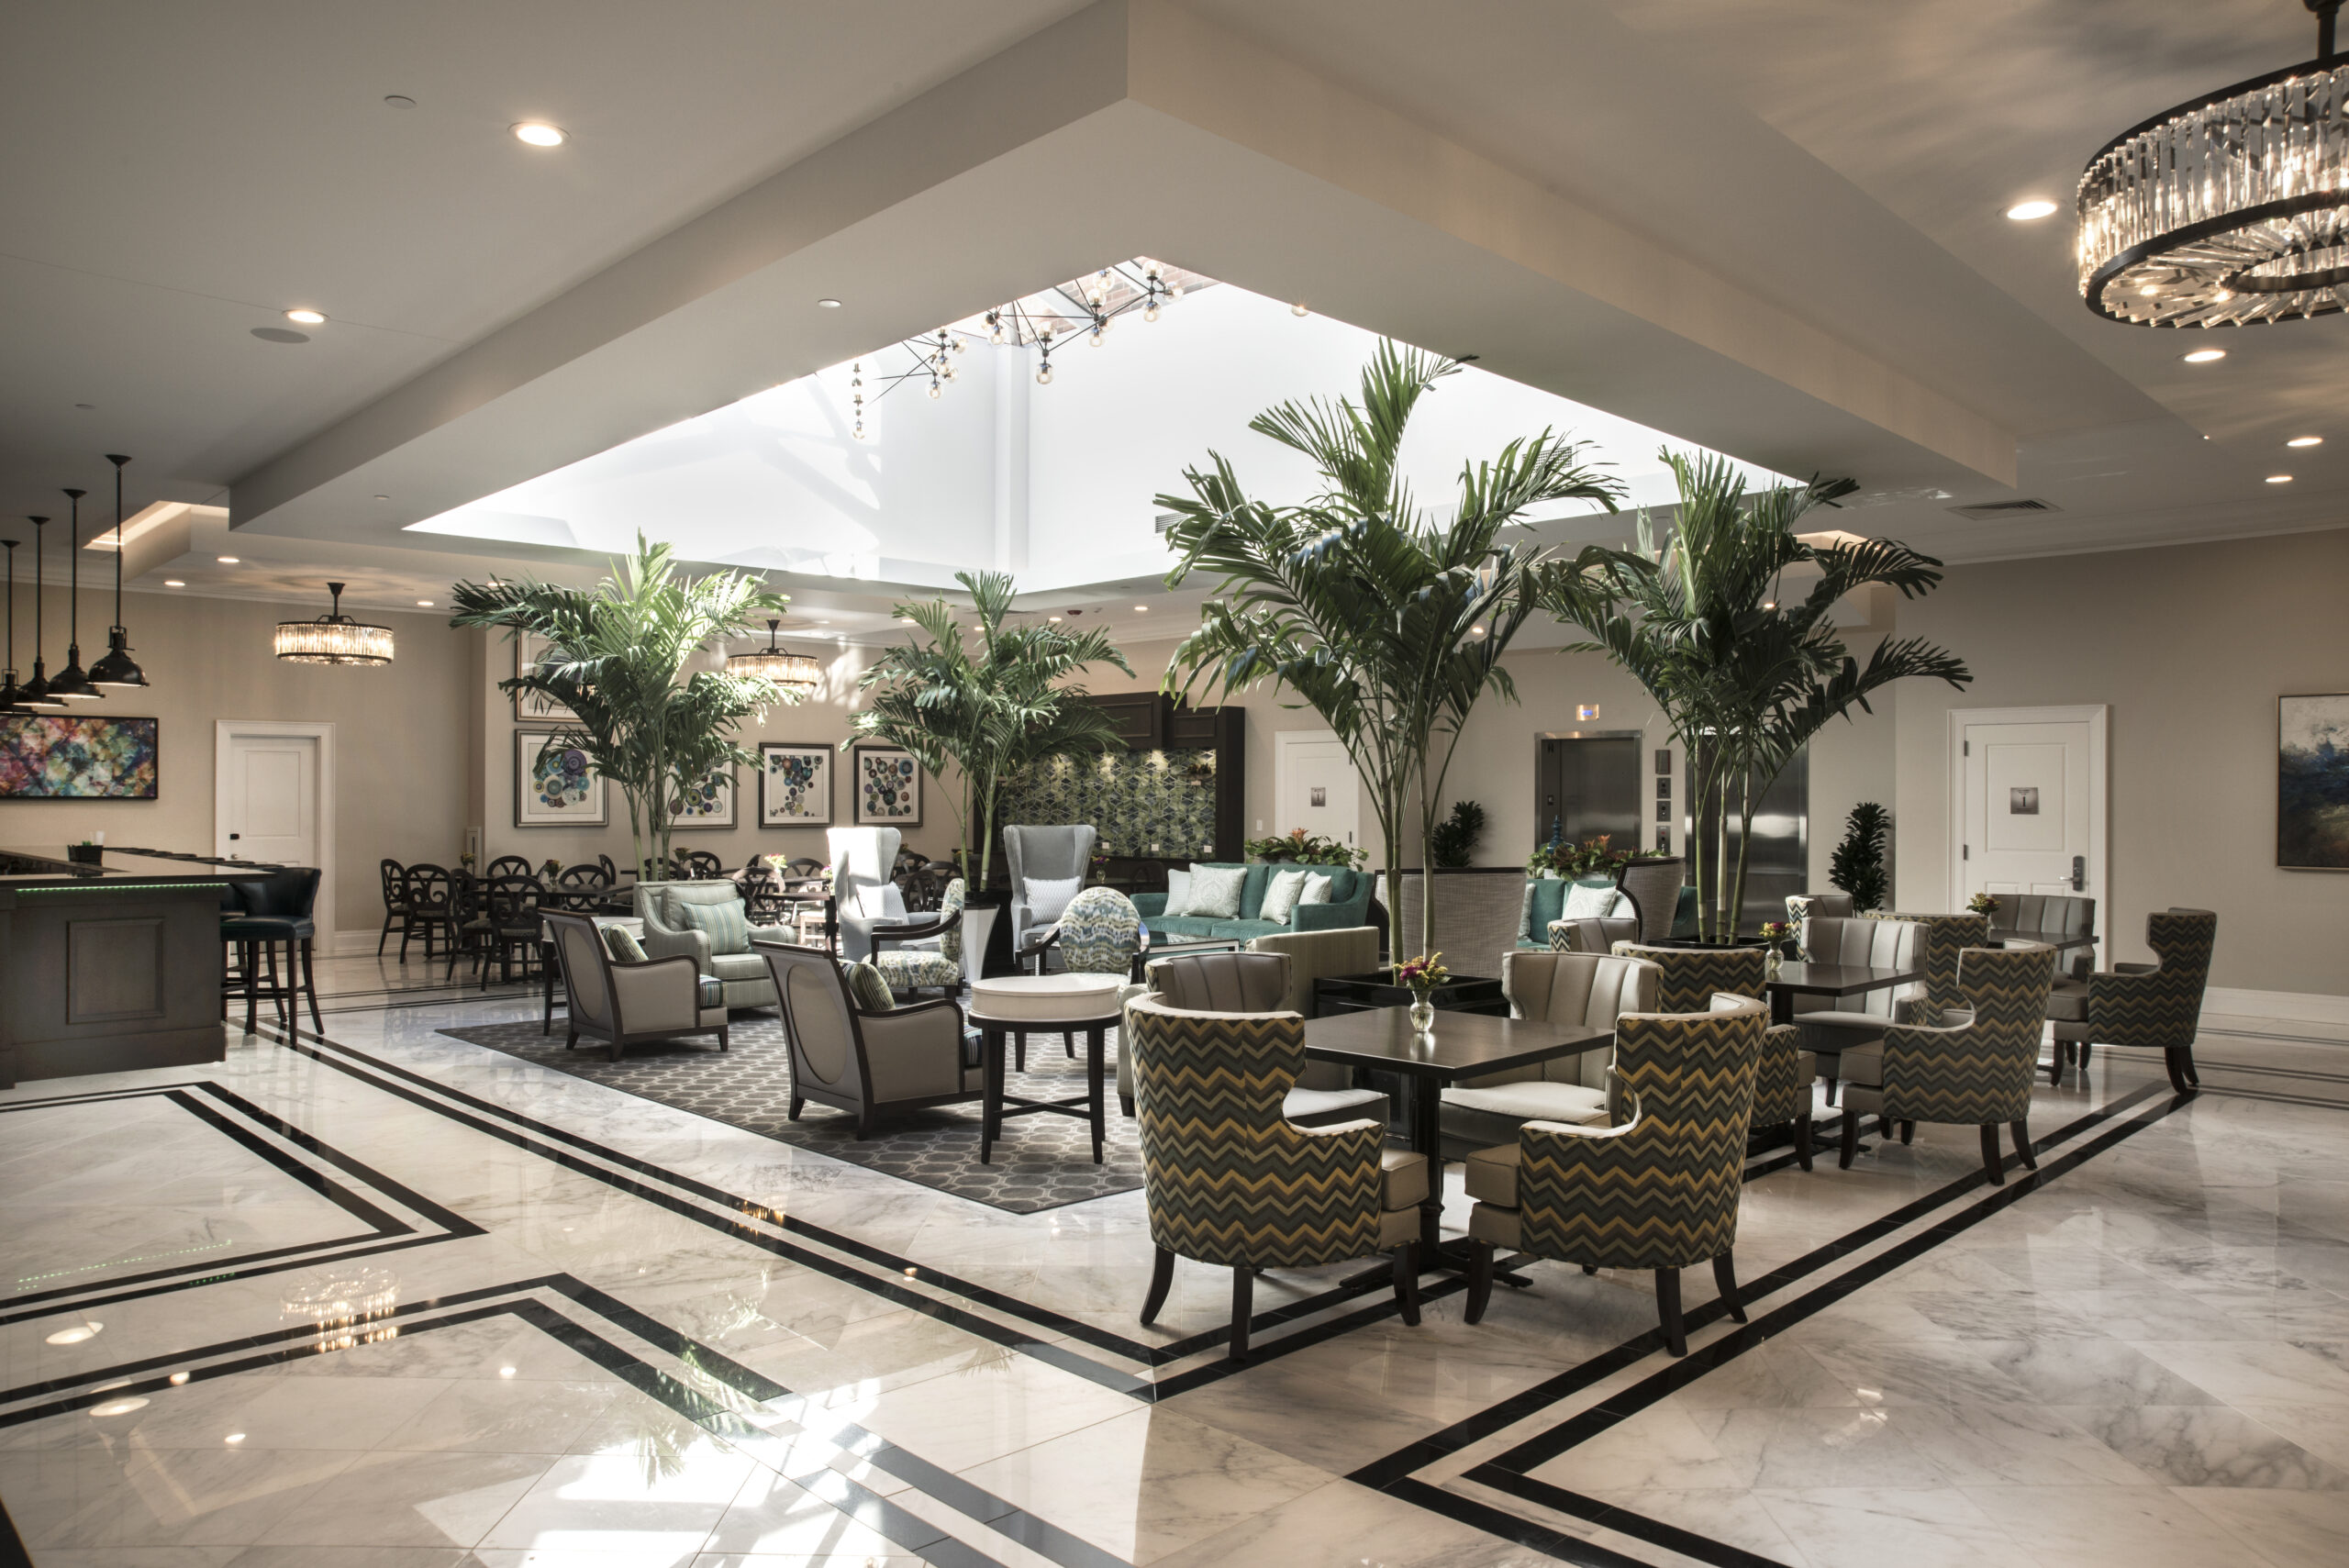 Dining areas within The Merion.